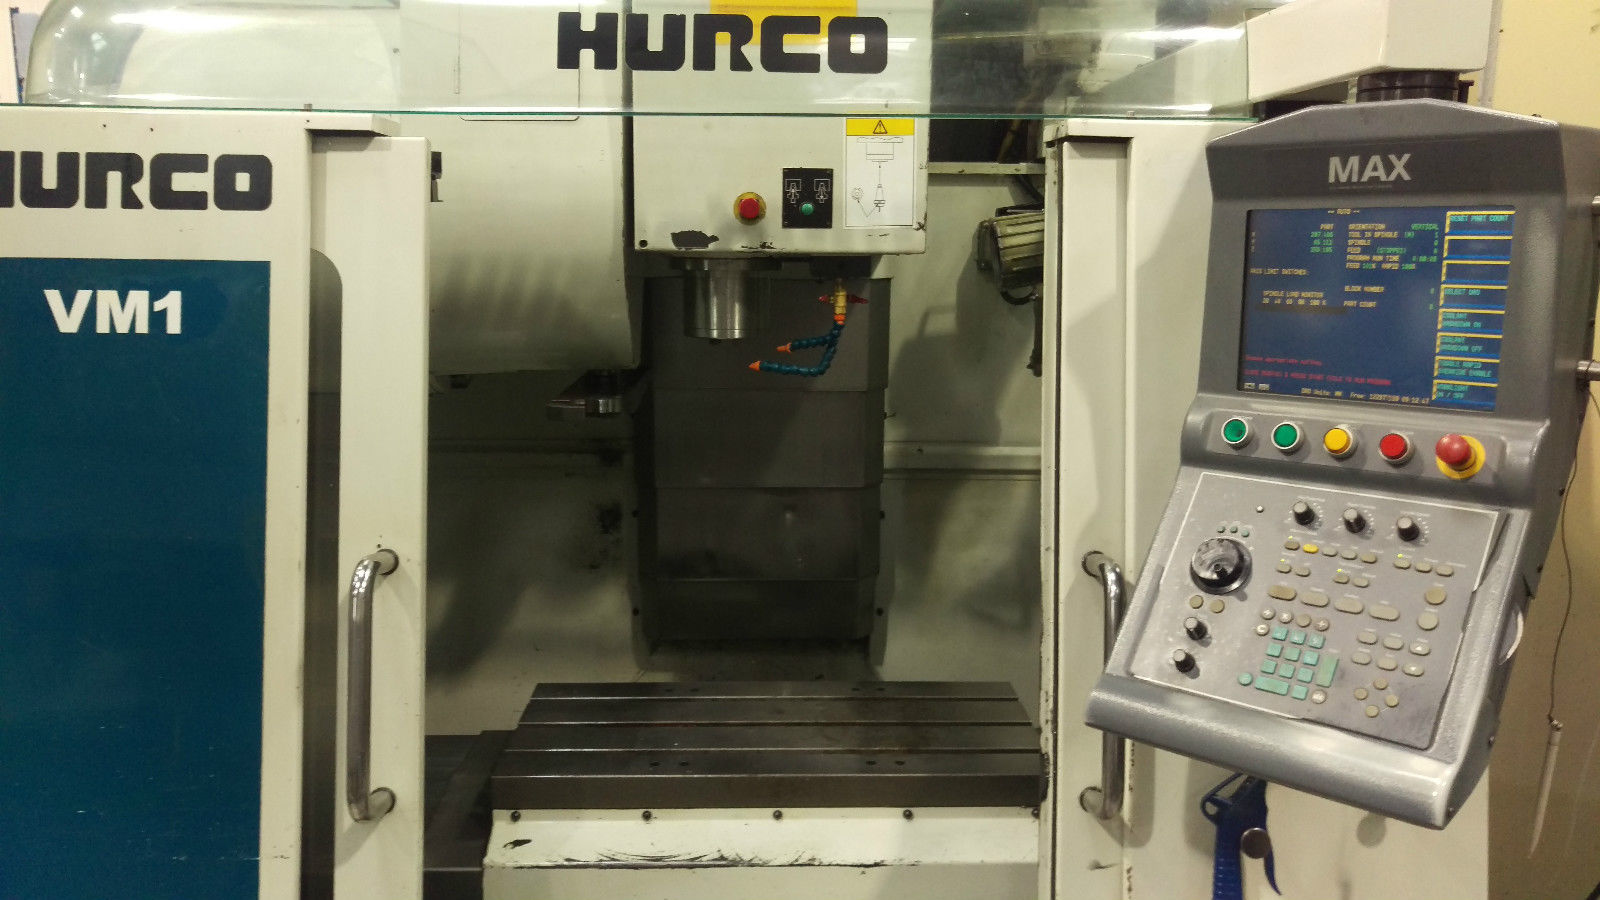 Hurco VM1 (2003) - 1st Machinery